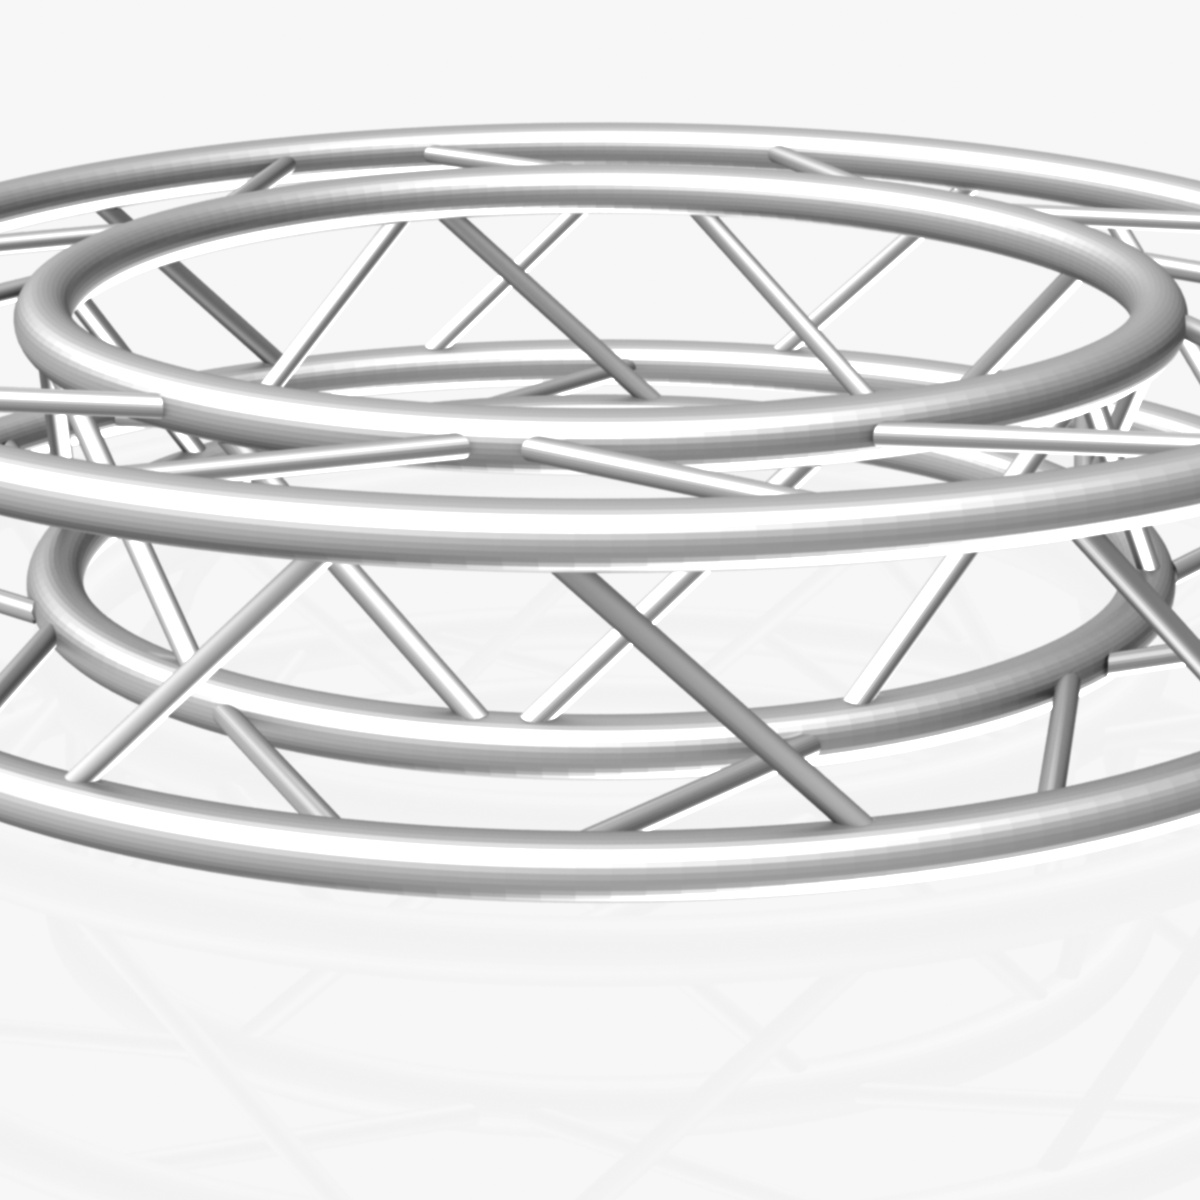 circle square truss full diameter 150cm 3d model 3ds max fbx c4d dae  obj 252295